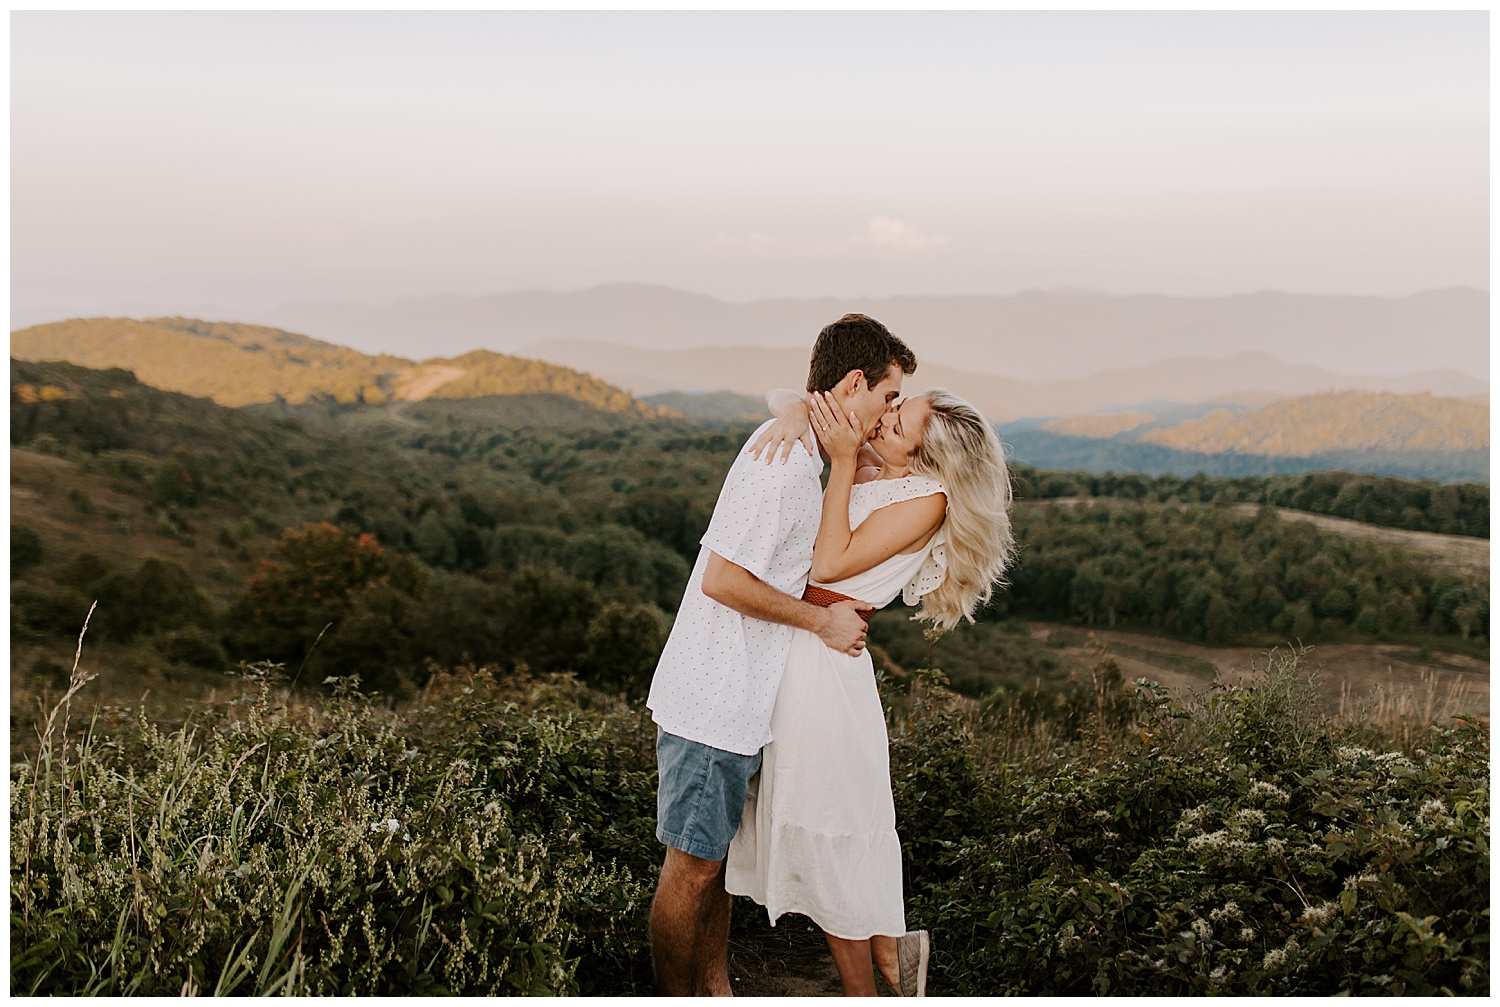 HANNAH_NICK_MAXPATCH_ENGAGEMENT2019-09-05_0008.jpg